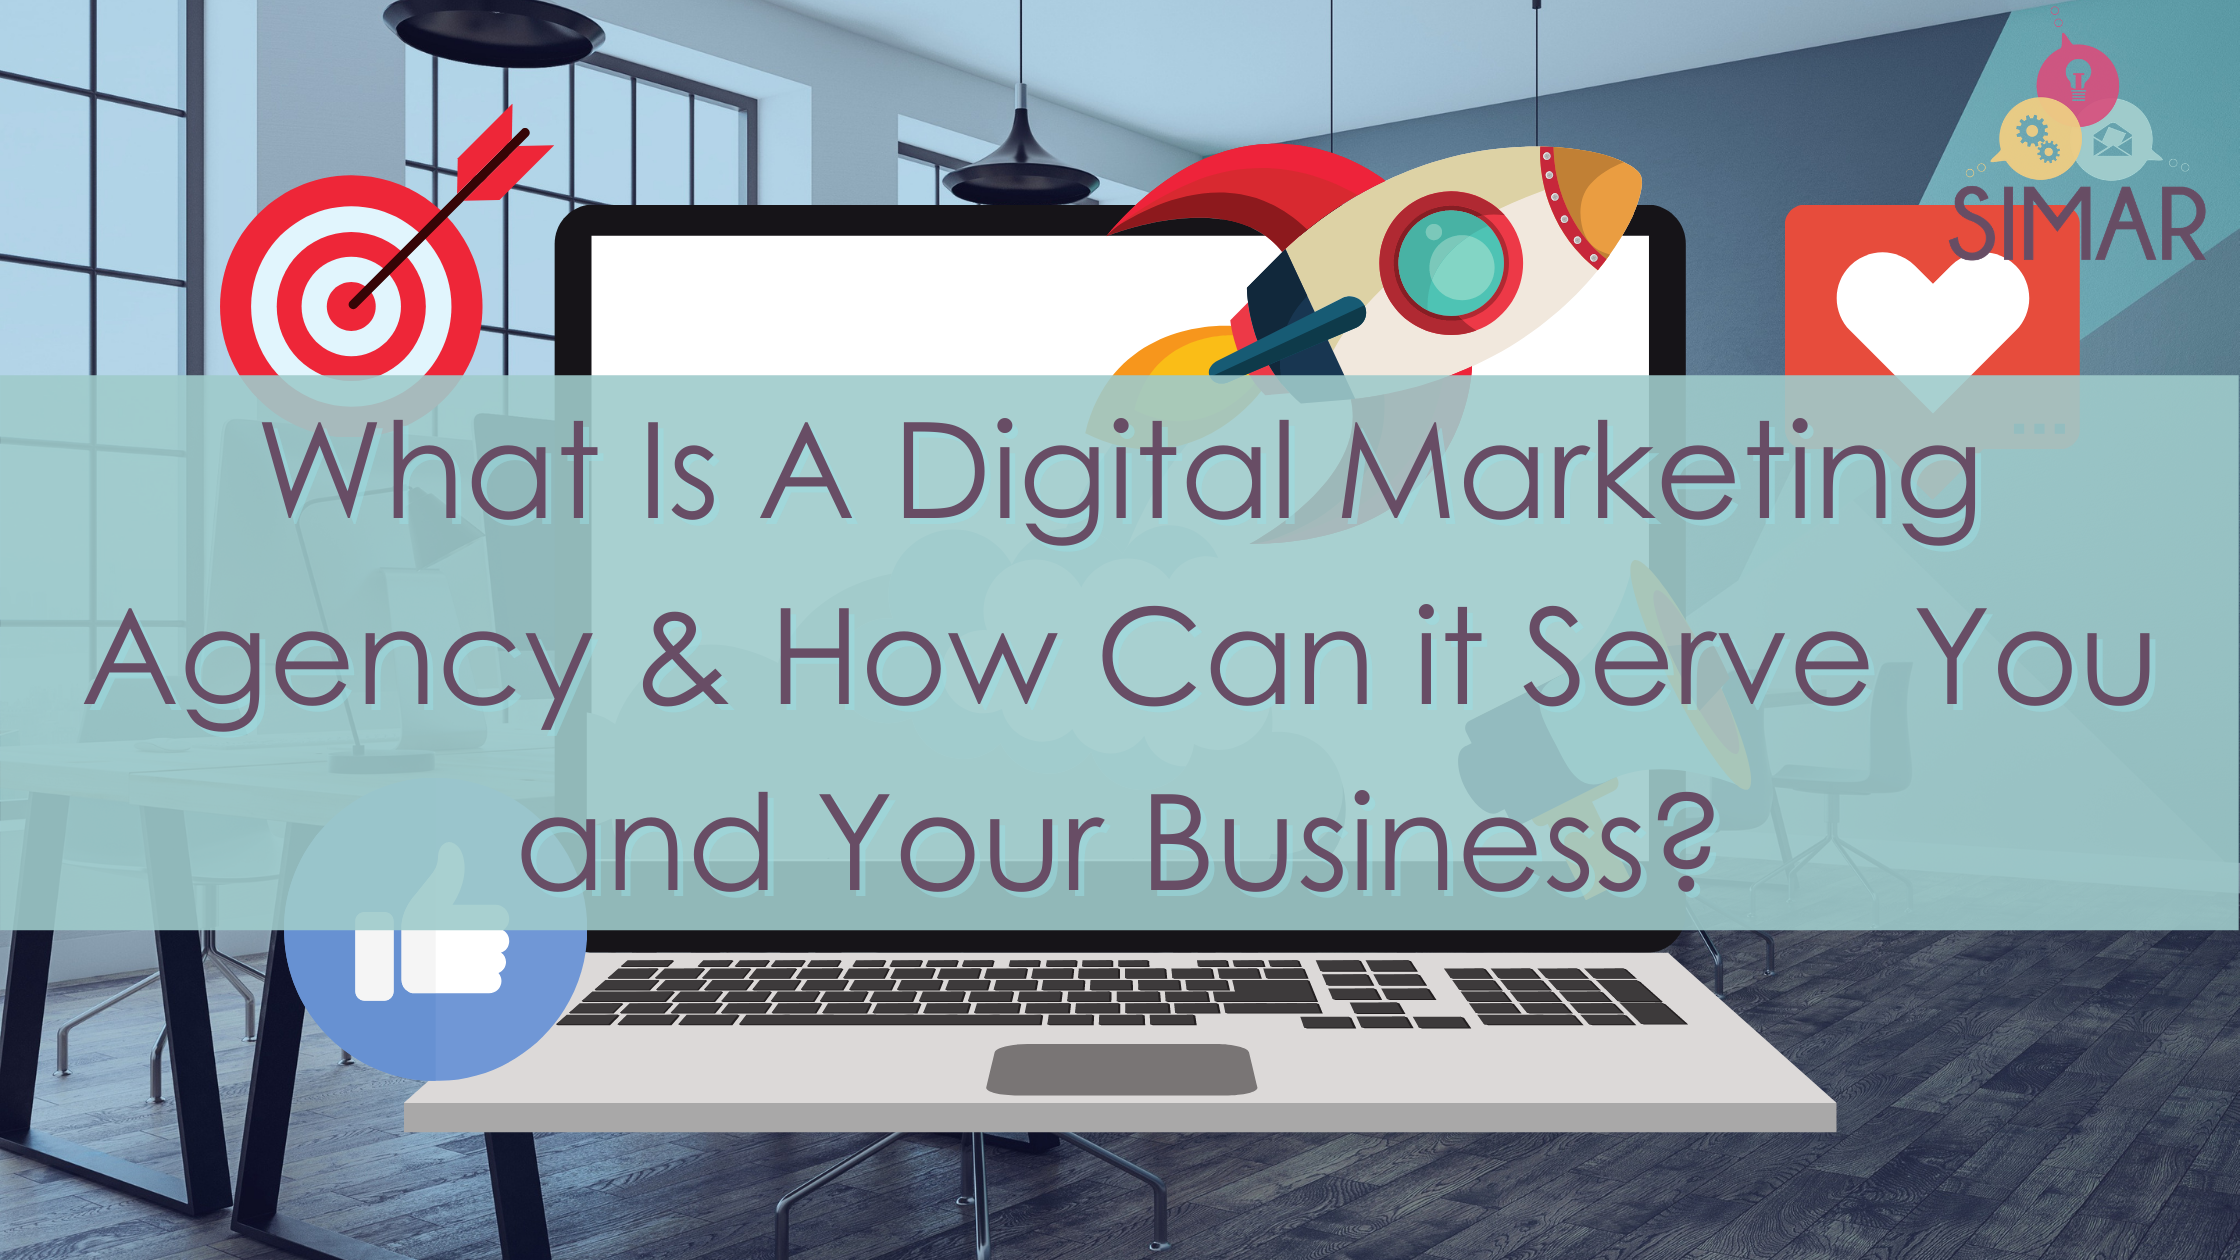 What Is A Digital Marketing Agency & How Can it Serve You and Your Business?